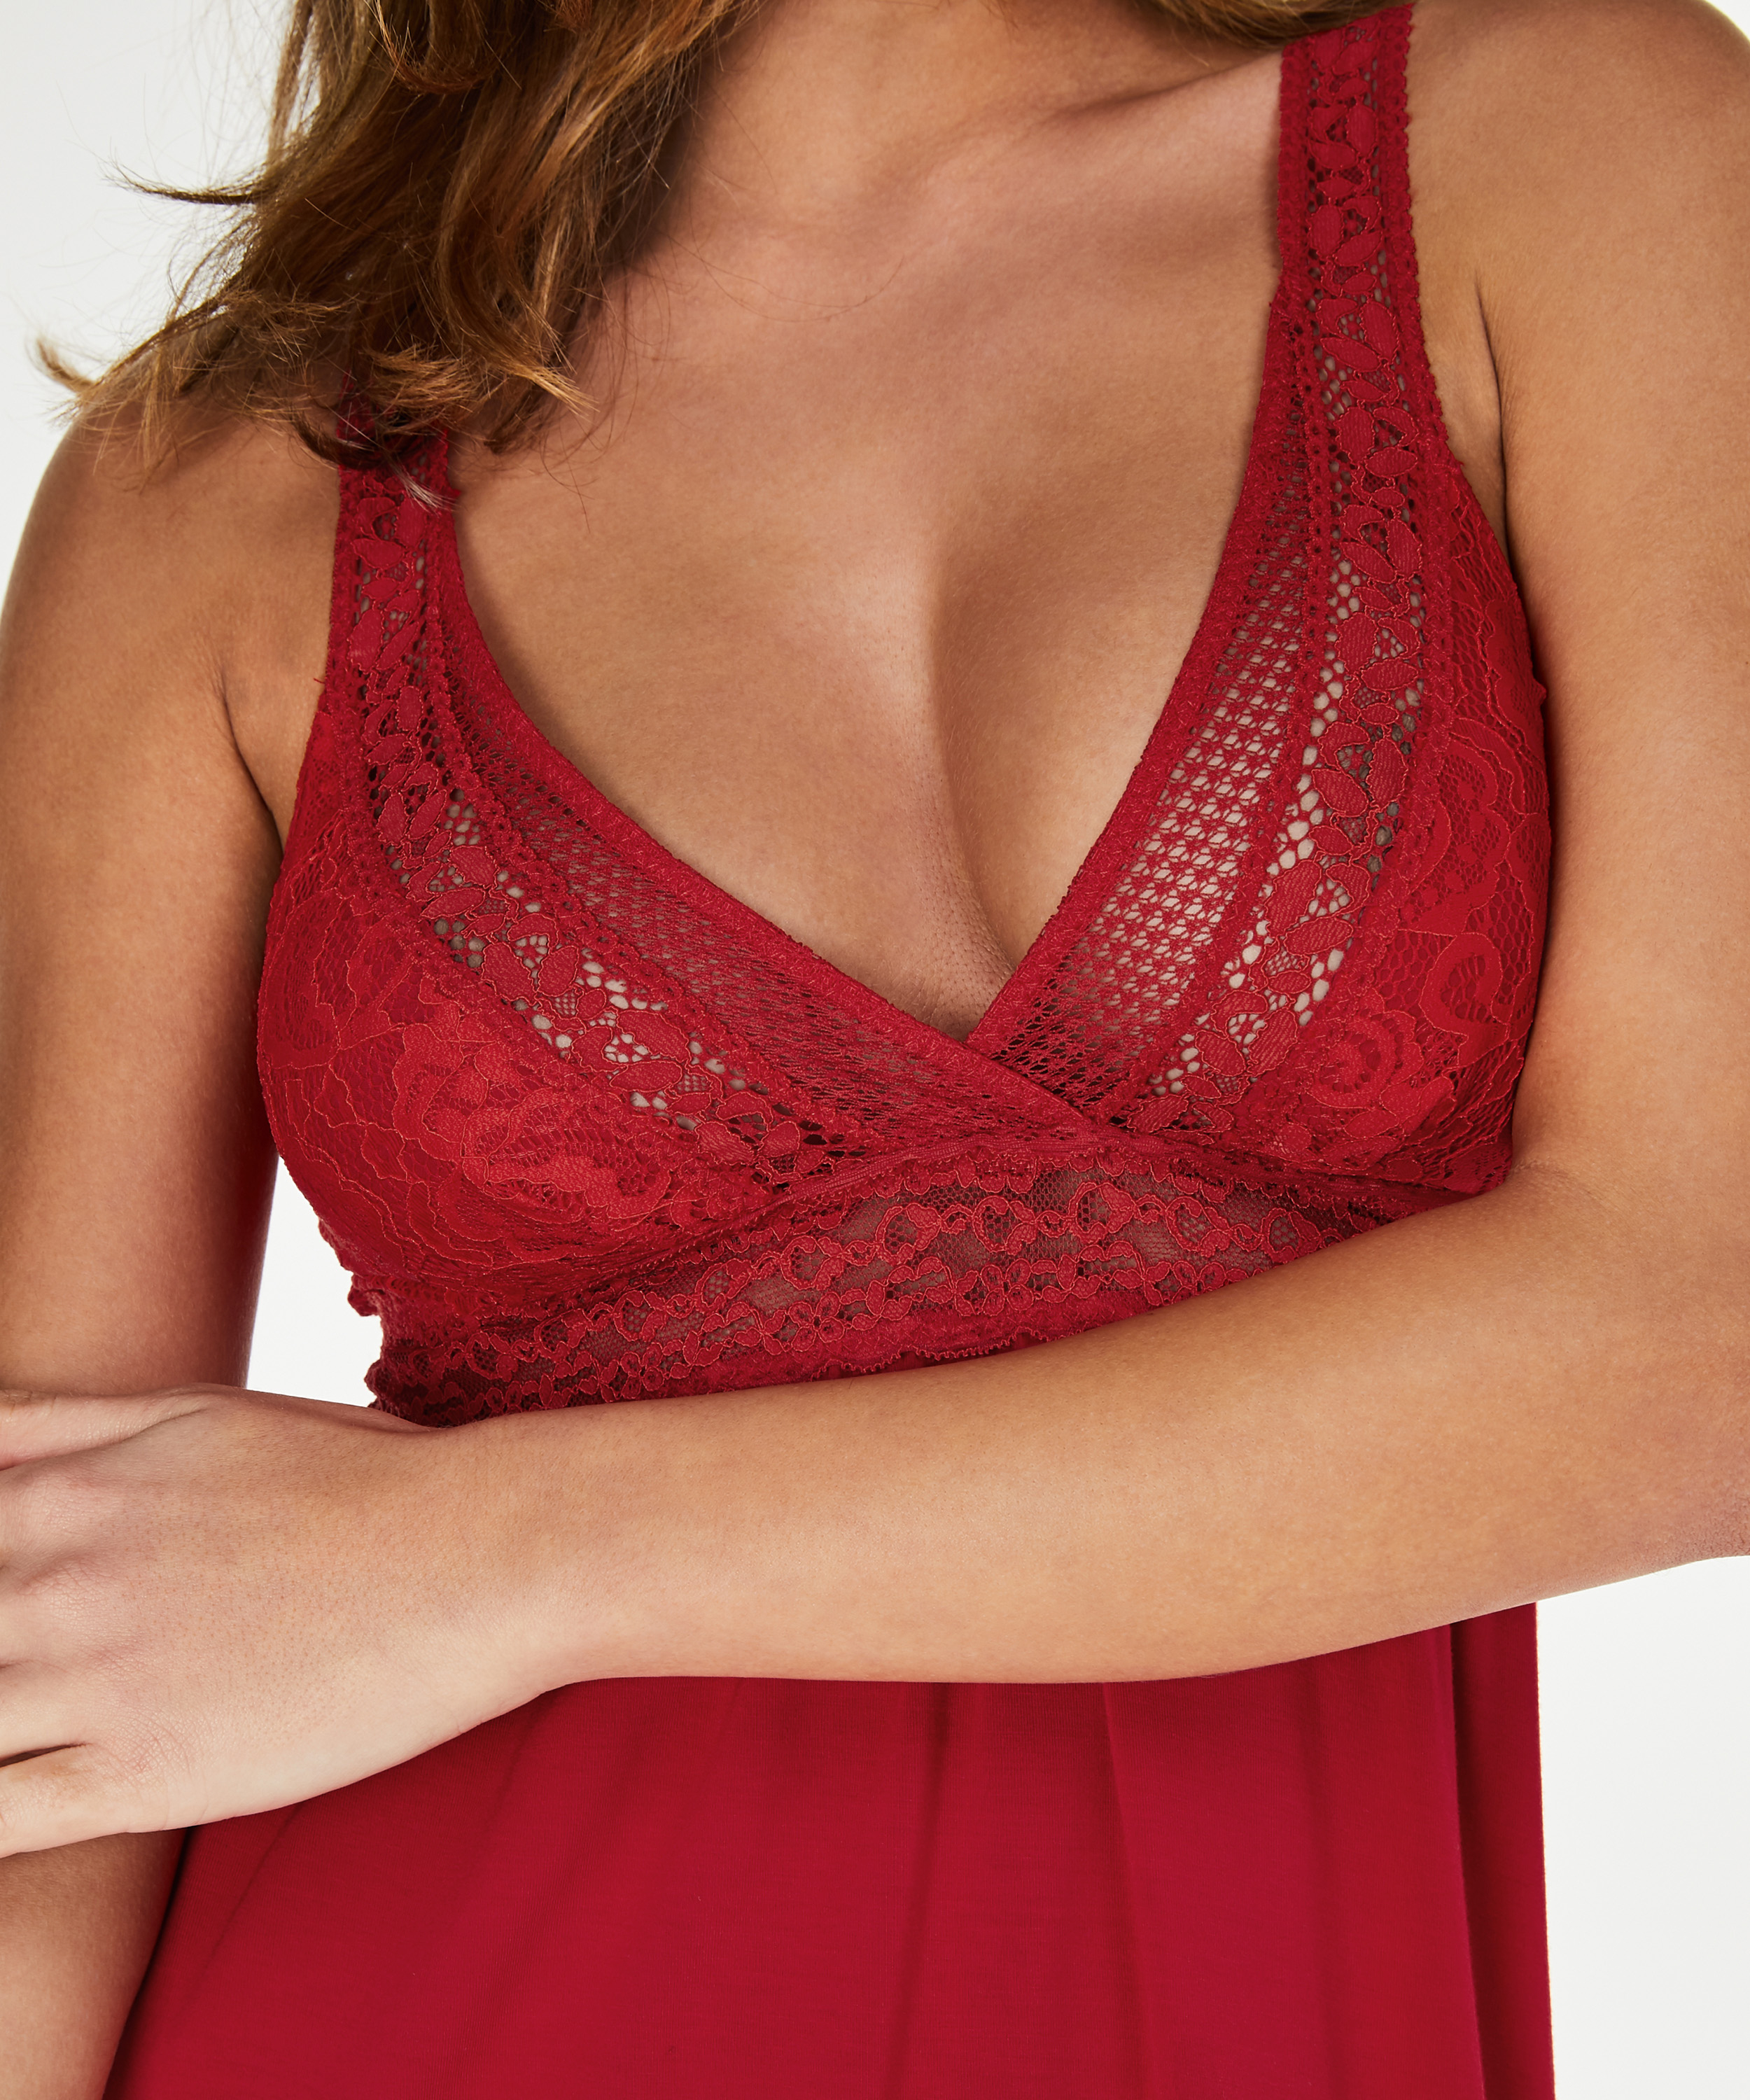 Nuisette Graphic Lace, Rouge, main